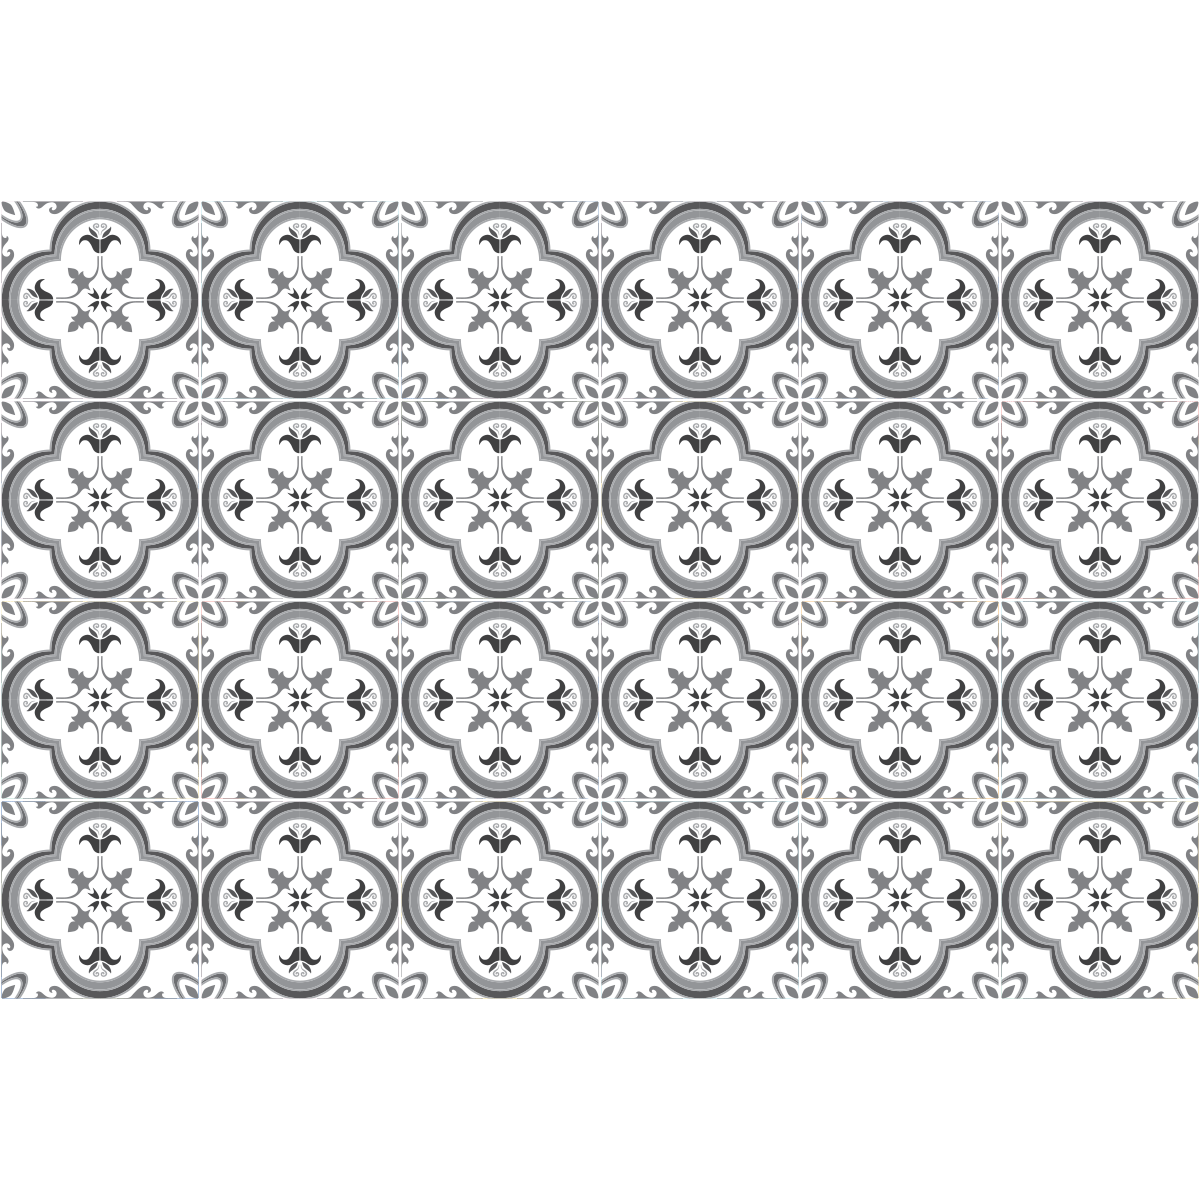 24 stickers carrelages azulejos nuance de gris somptueux art et design artistiques ambiance. Black Bedroom Furniture Sets. Home Design Ideas